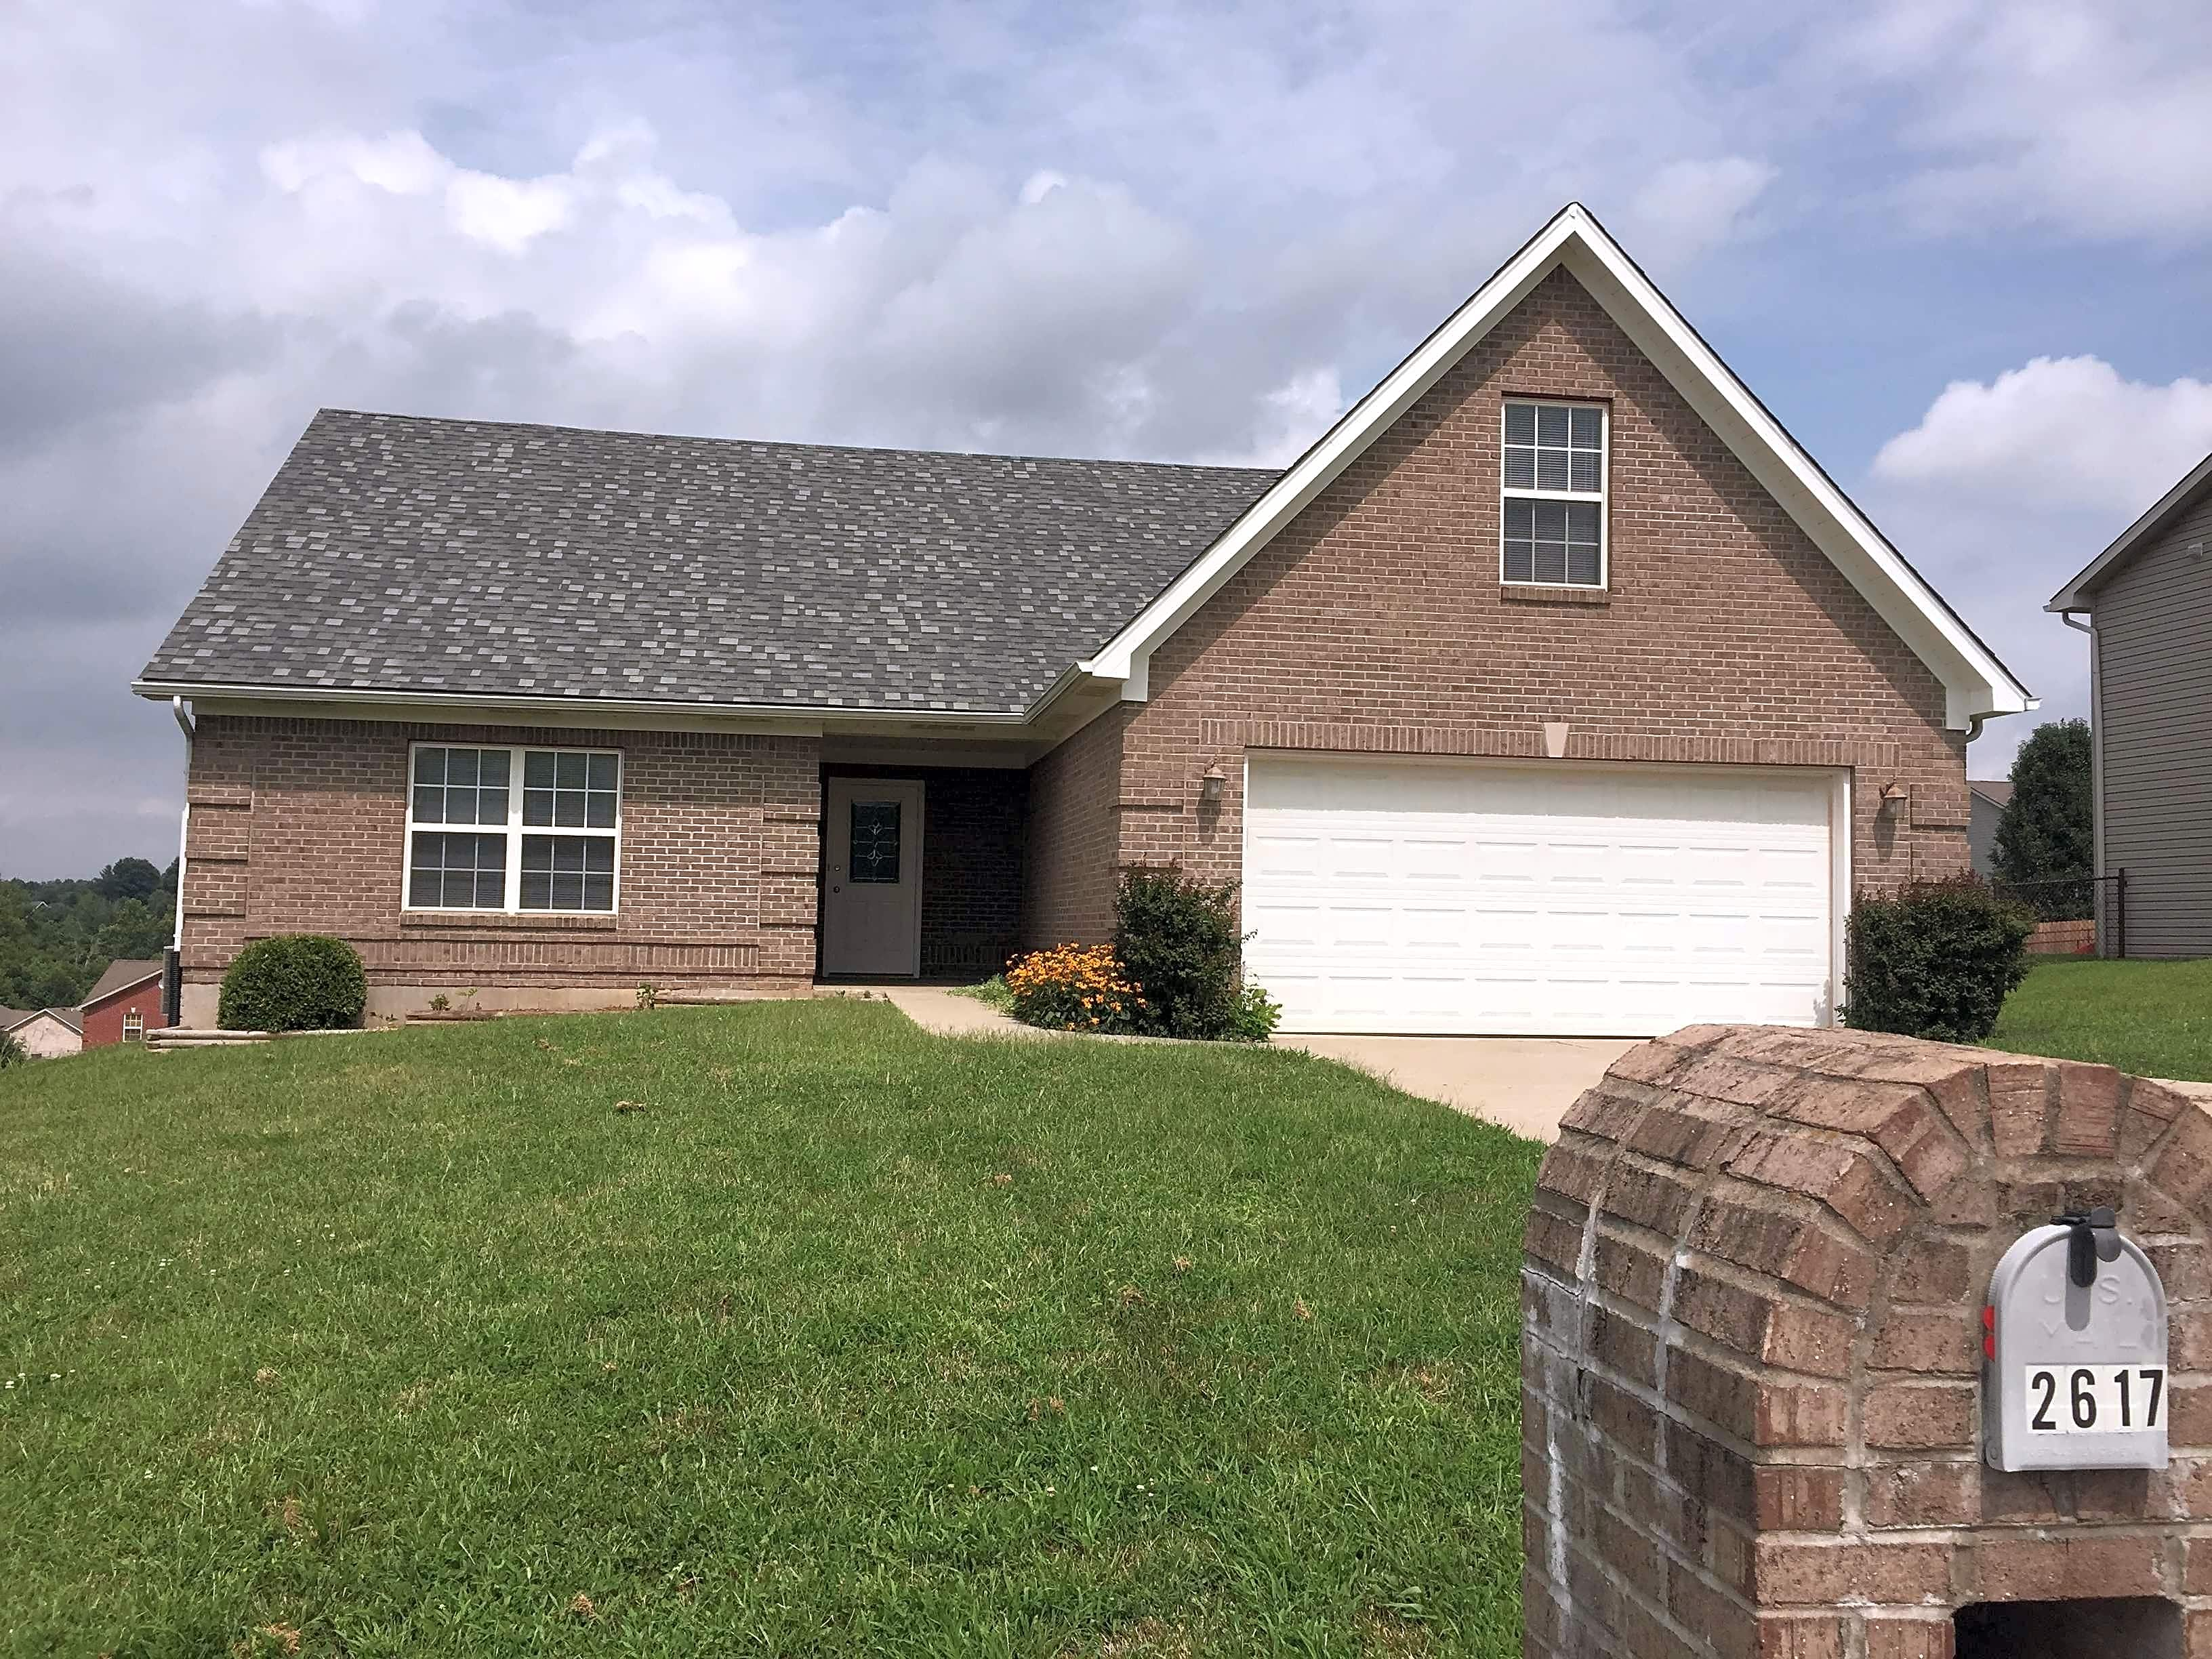 House for Rent in Jeffersonville